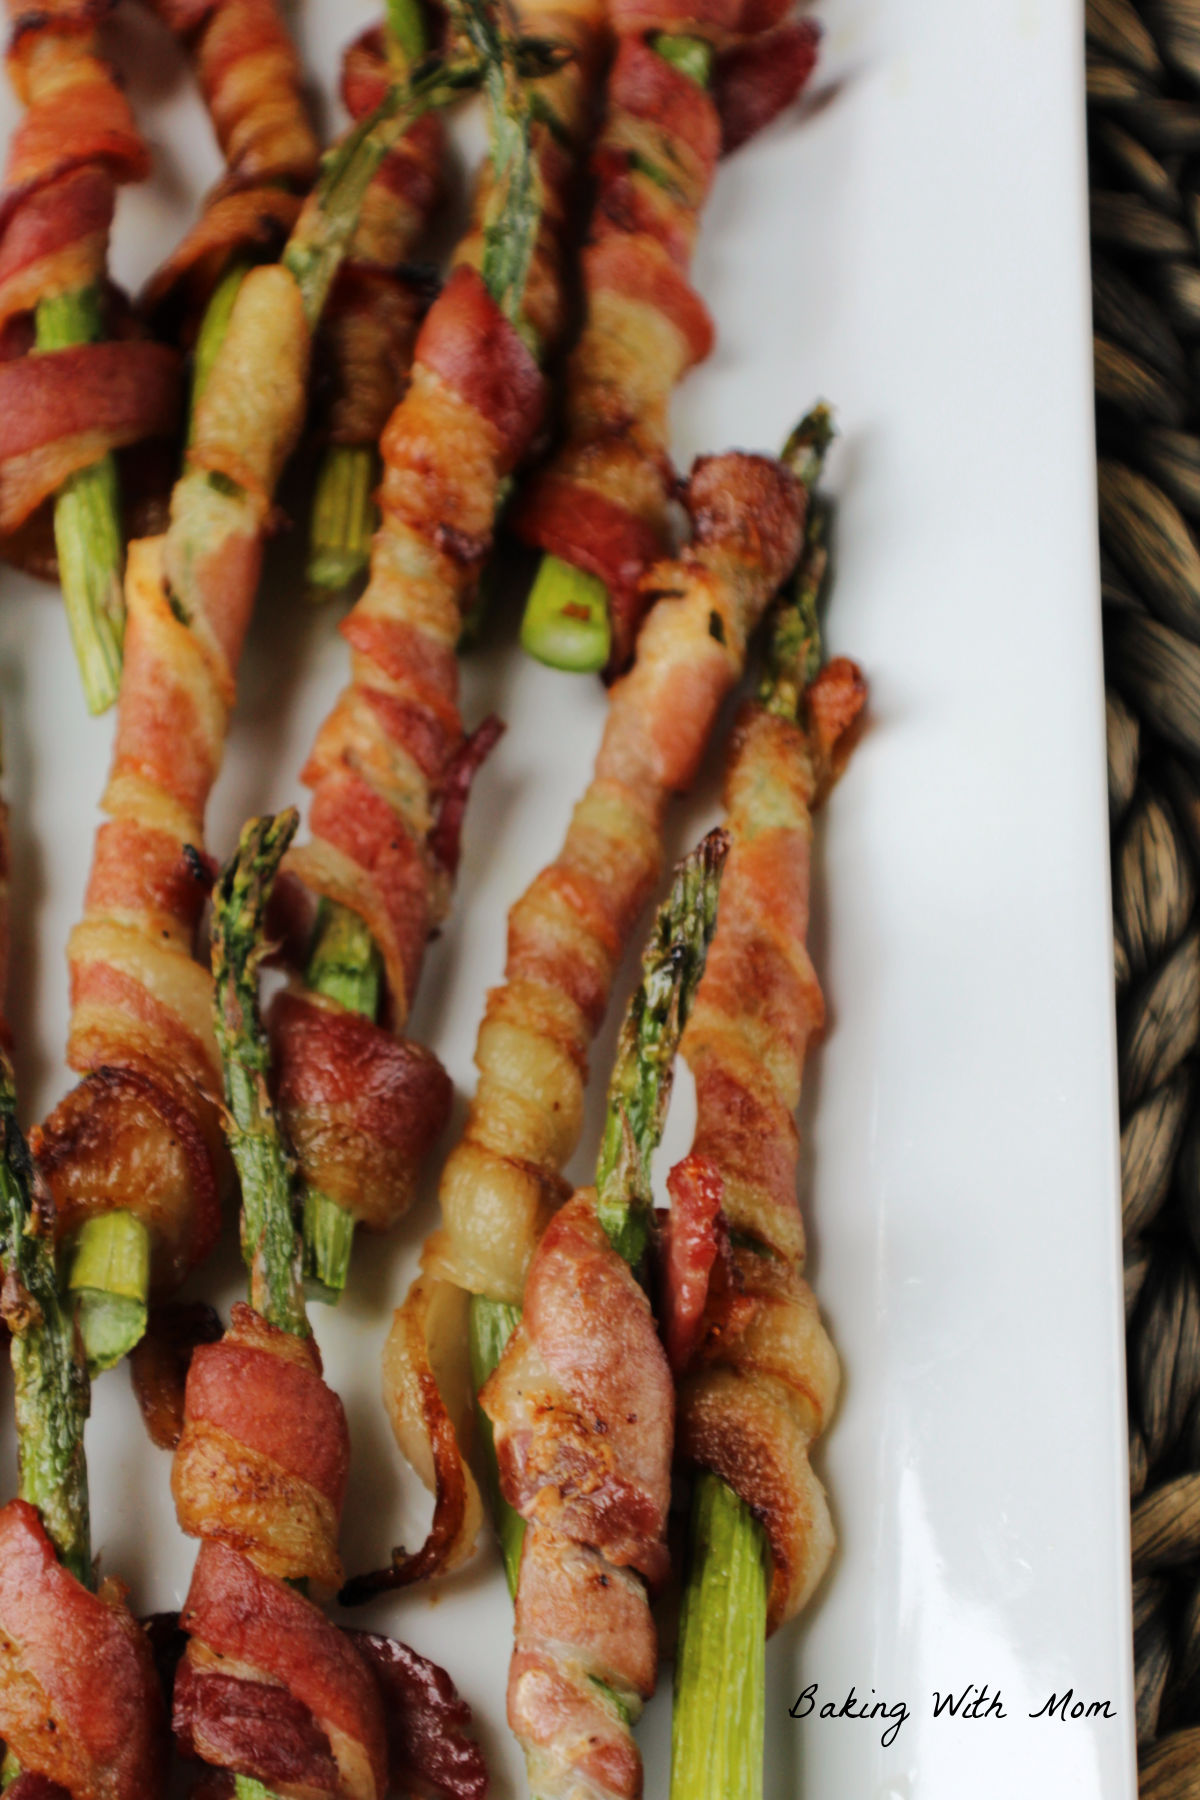 Asparagus wrapped in bacon on a white plate.